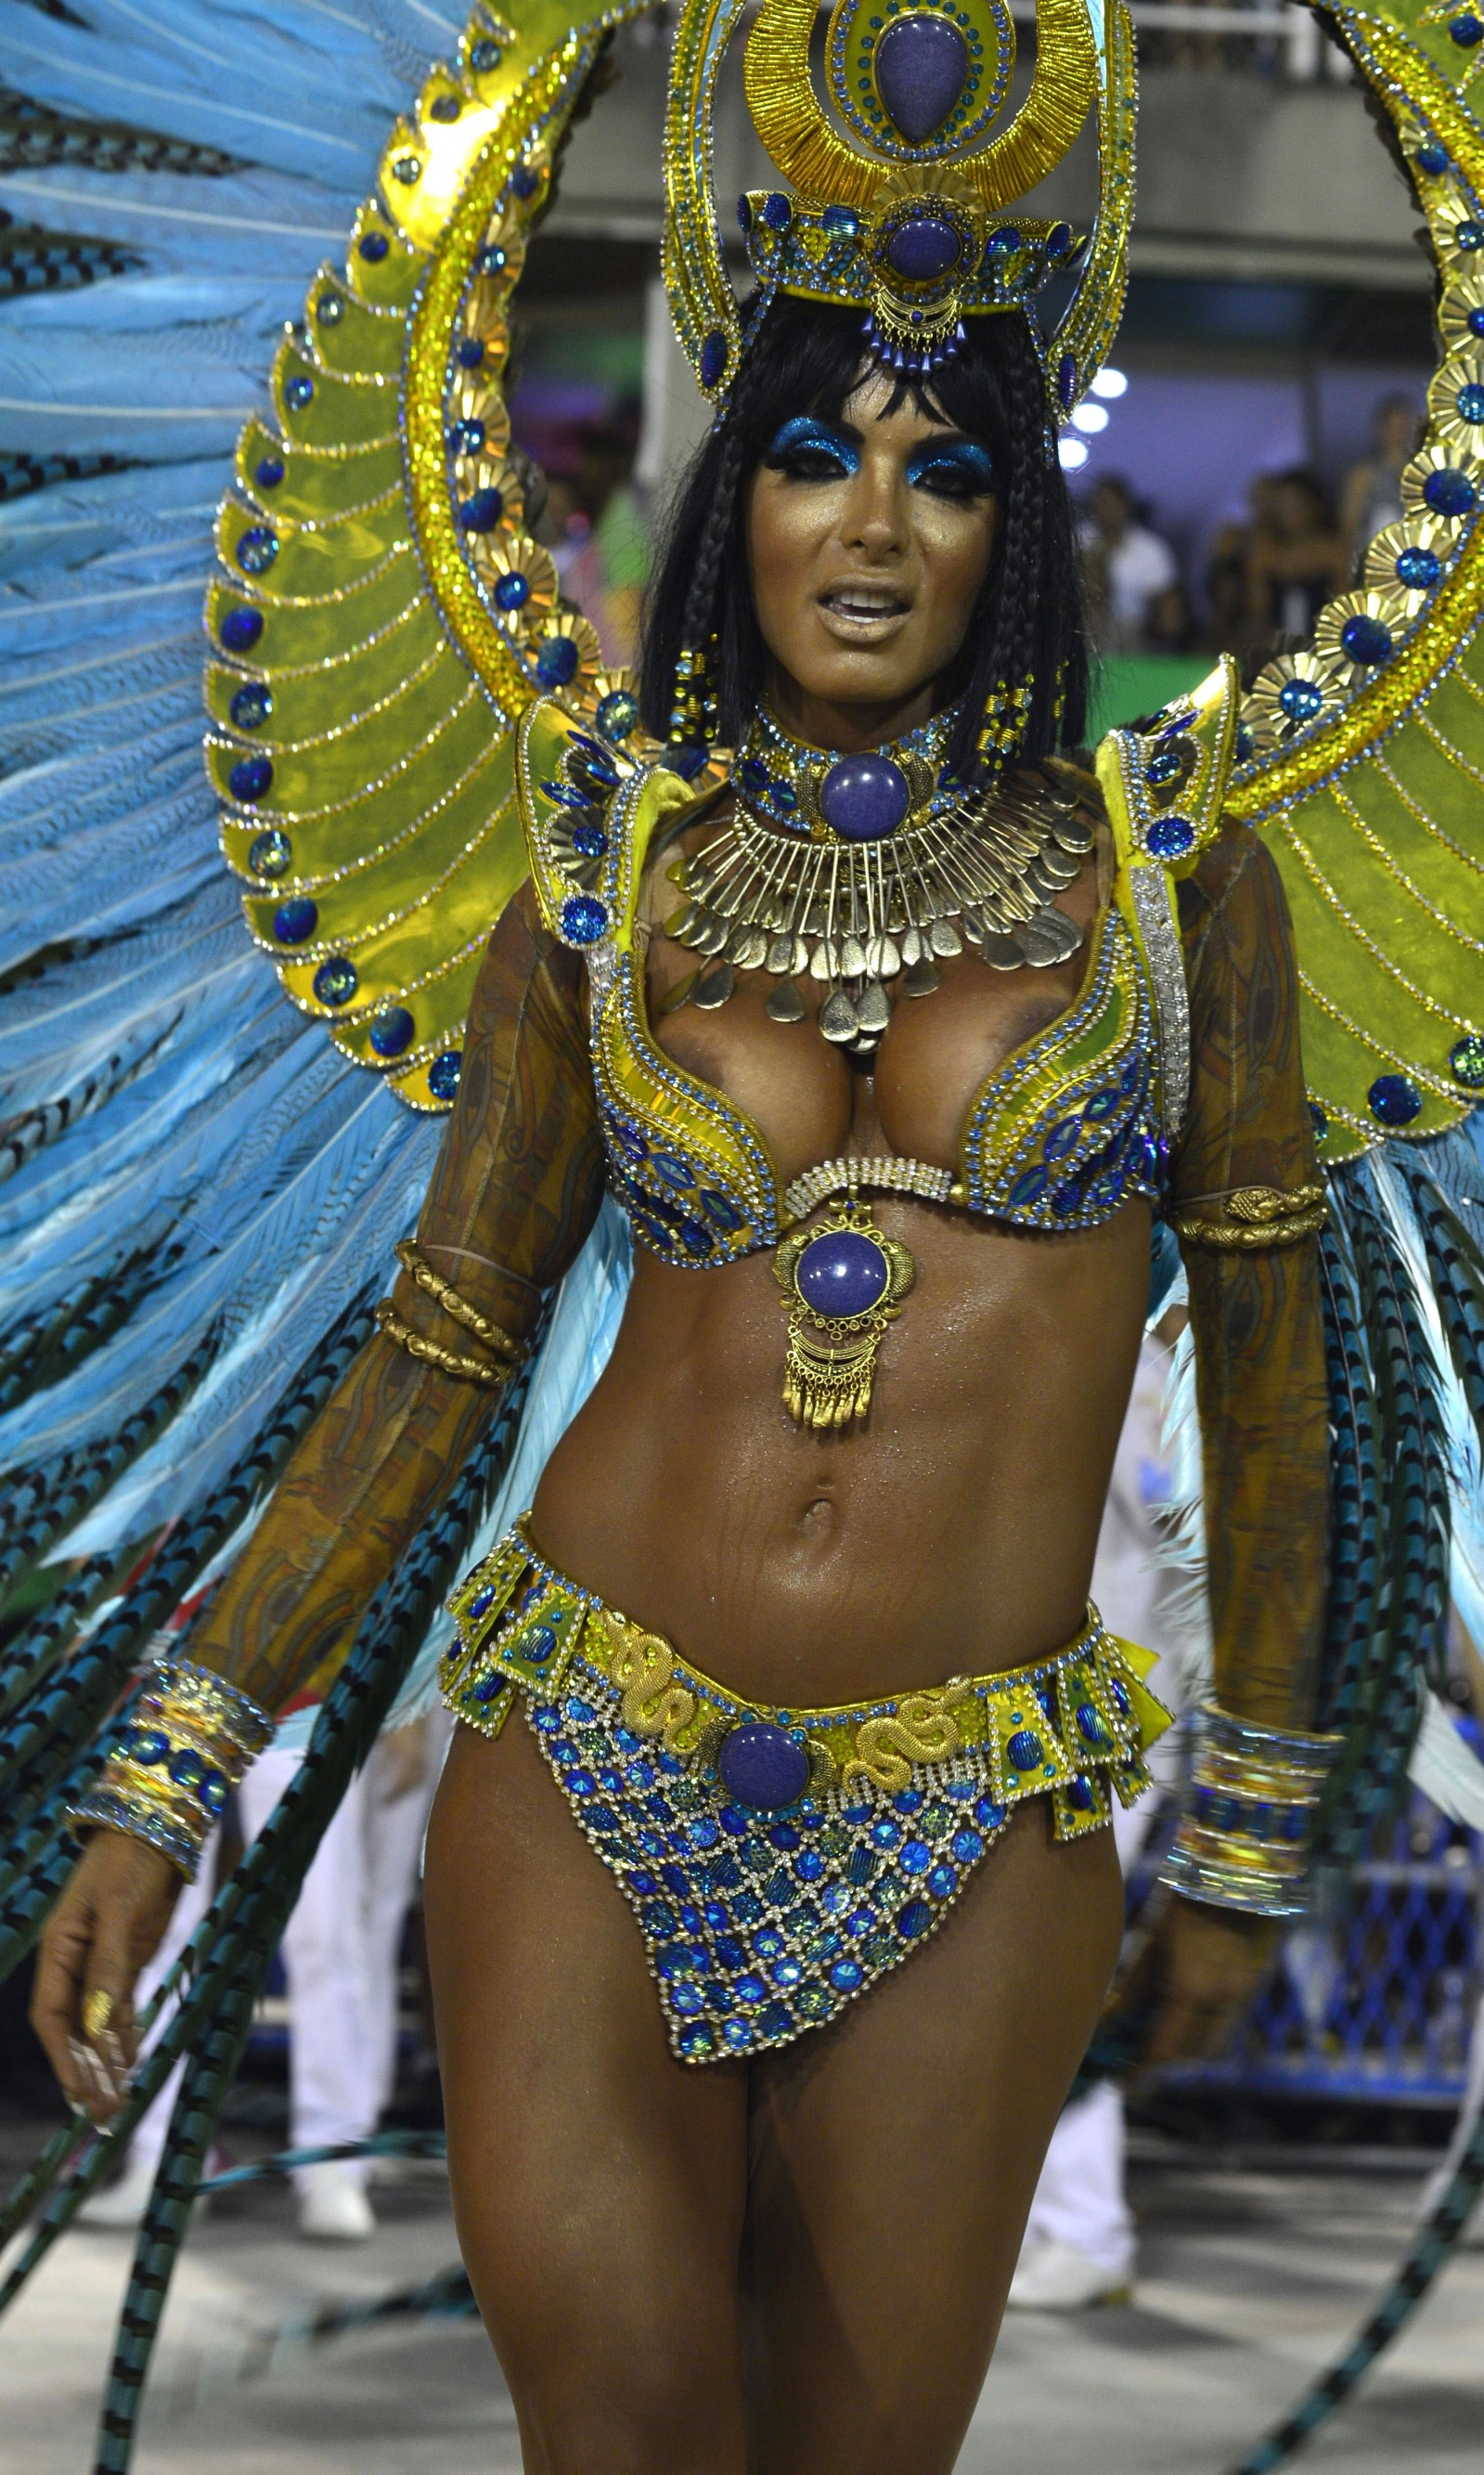 Rio carnival nude naked join. agree